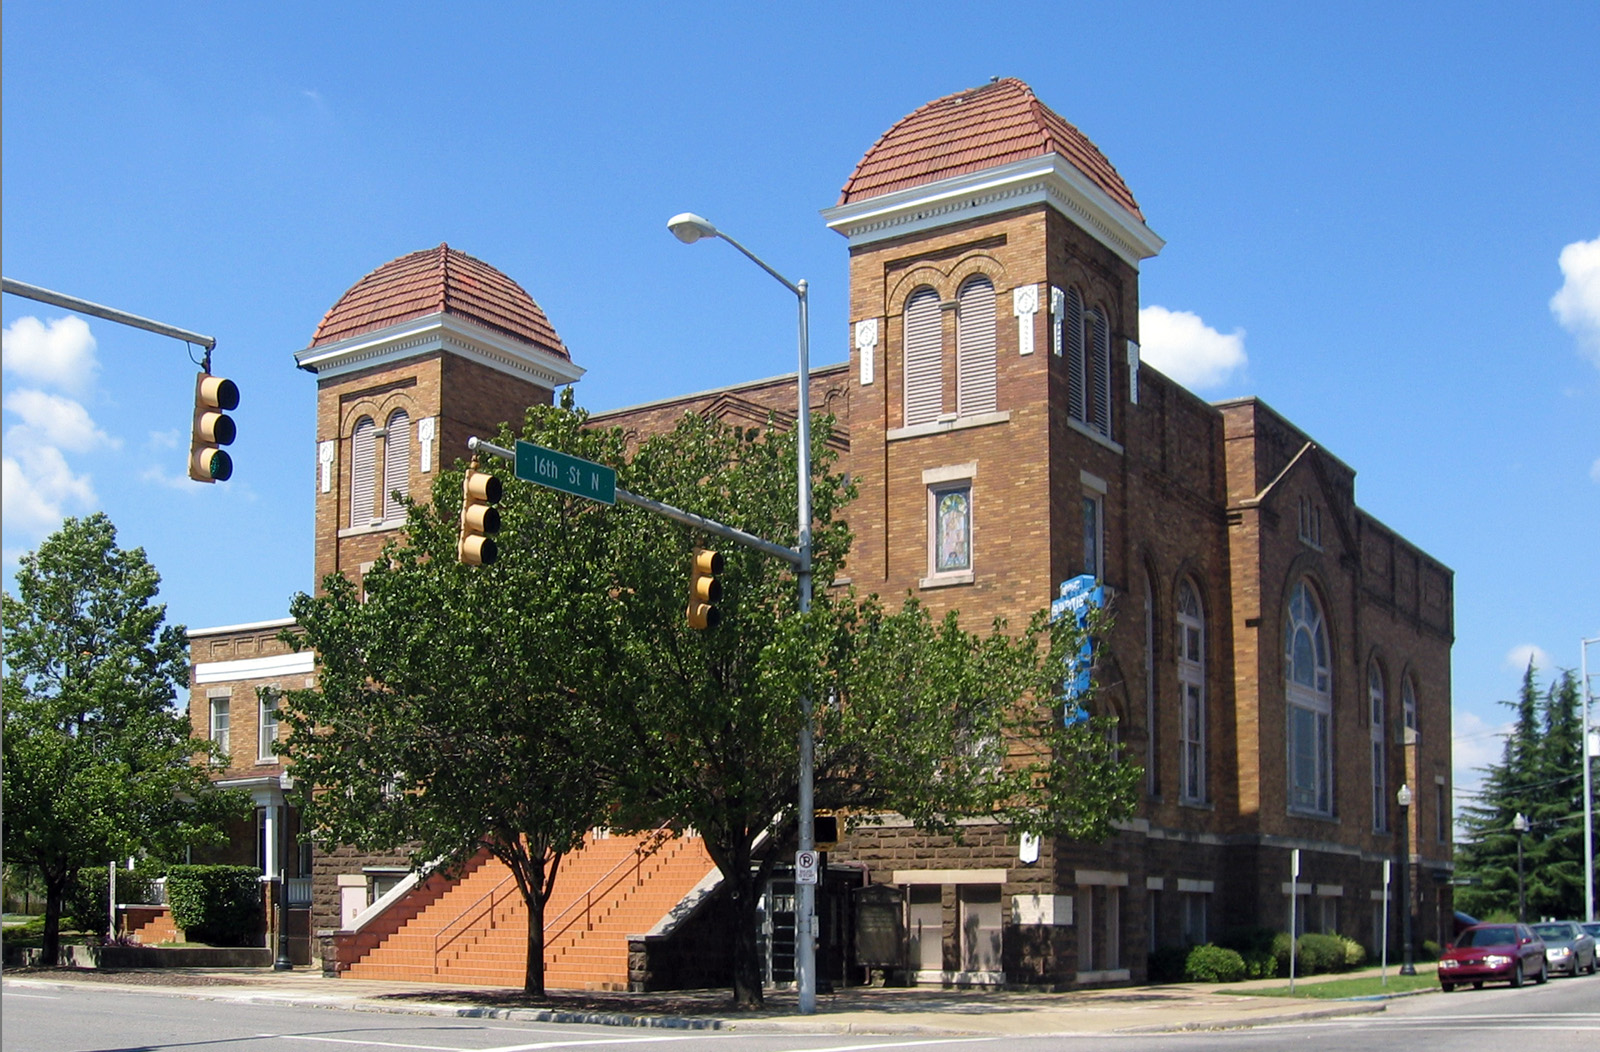 16th Street Baptist Church Bombing (1963)